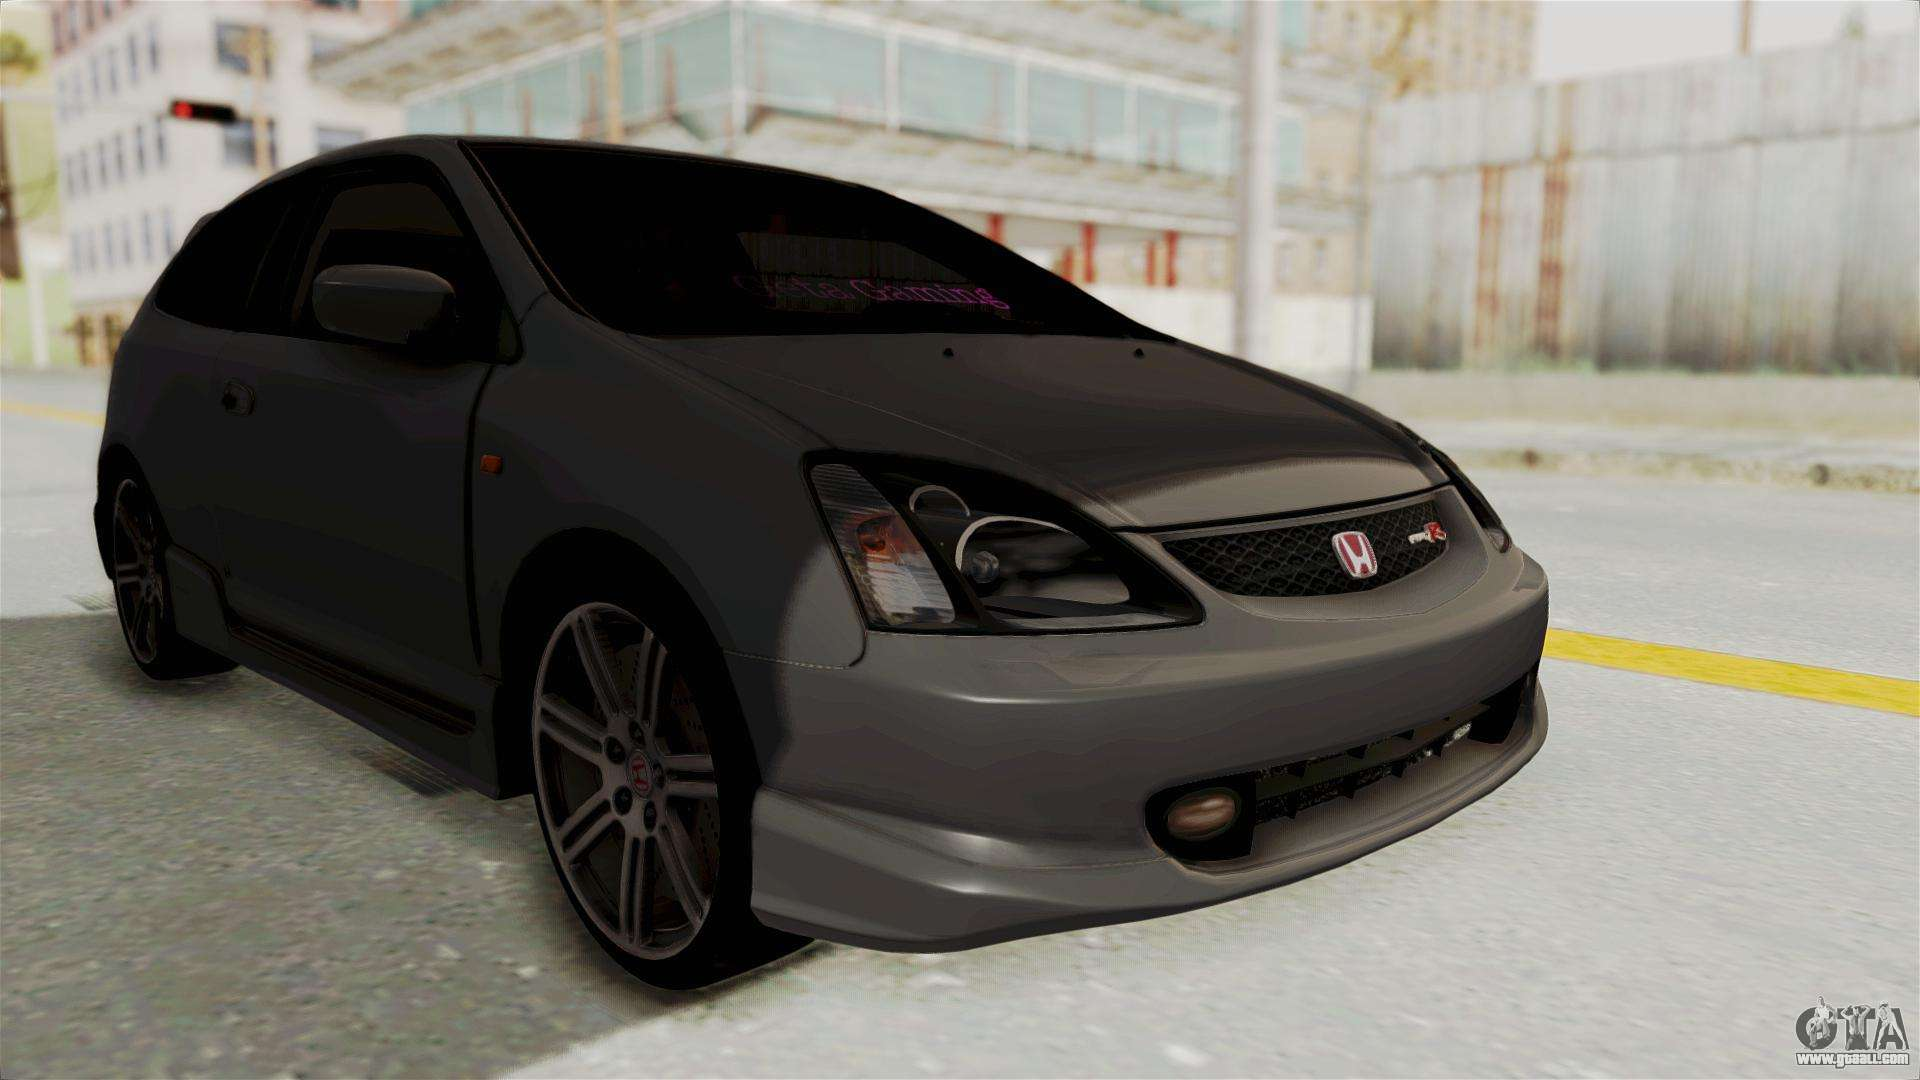 Honda Civic Type R Ep3 For Gta San Andreas  Black Bedroom Furniture Sets  Home Design Ideas